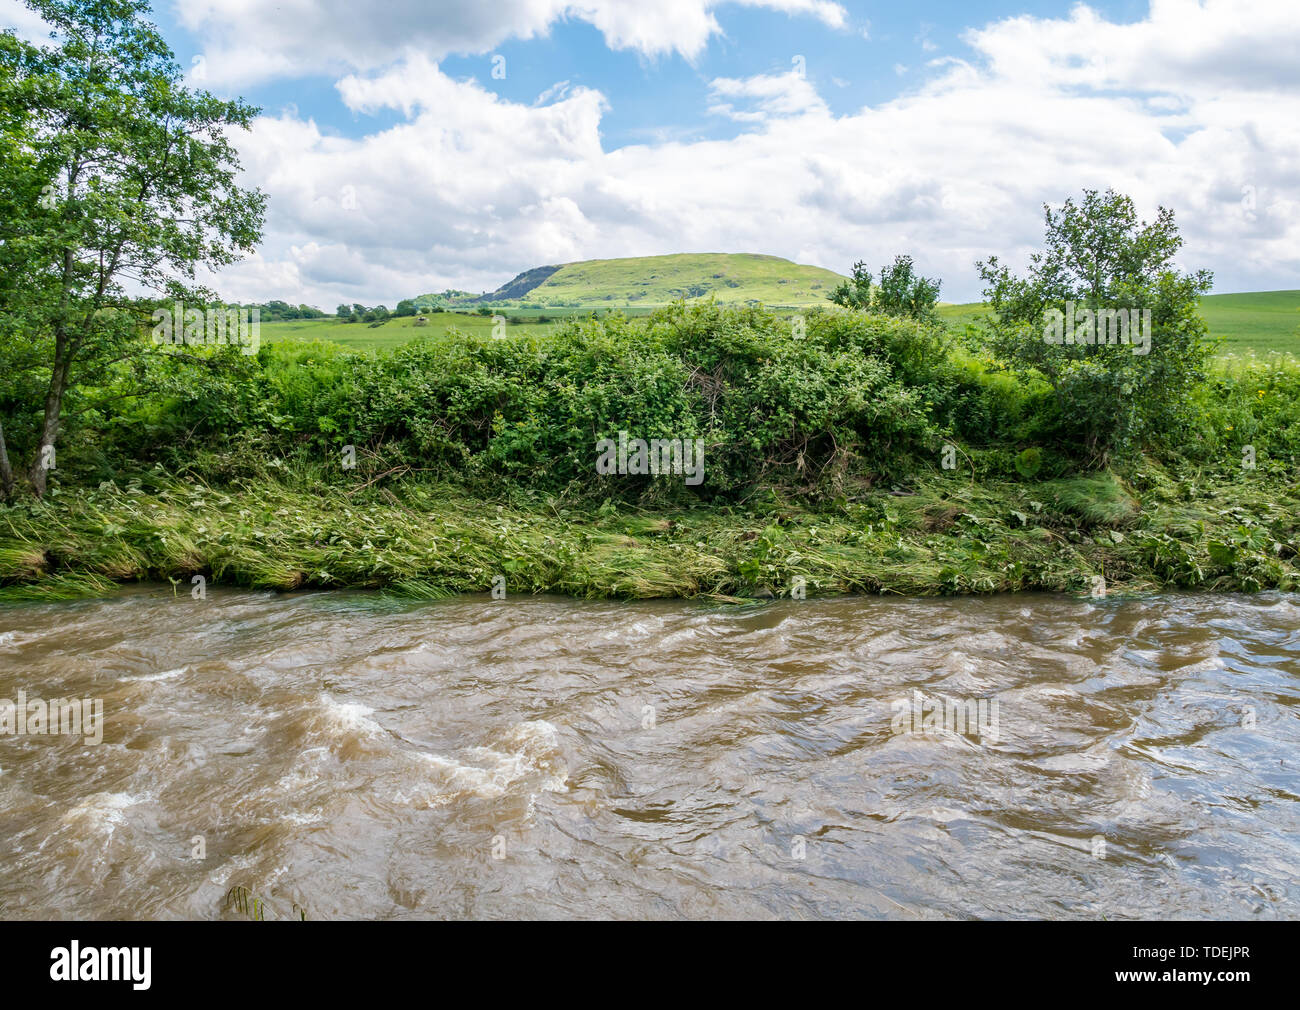 River Tyne path, East Lothian, Scotland, United Kingdom, 15th June 2019. UK Weather: Tyne River path with evidence of flood damage after heavy rain and a swollen river with crushed vegetation along the riverbank with a view of the crag and tail of Traprain Law - Stock Image